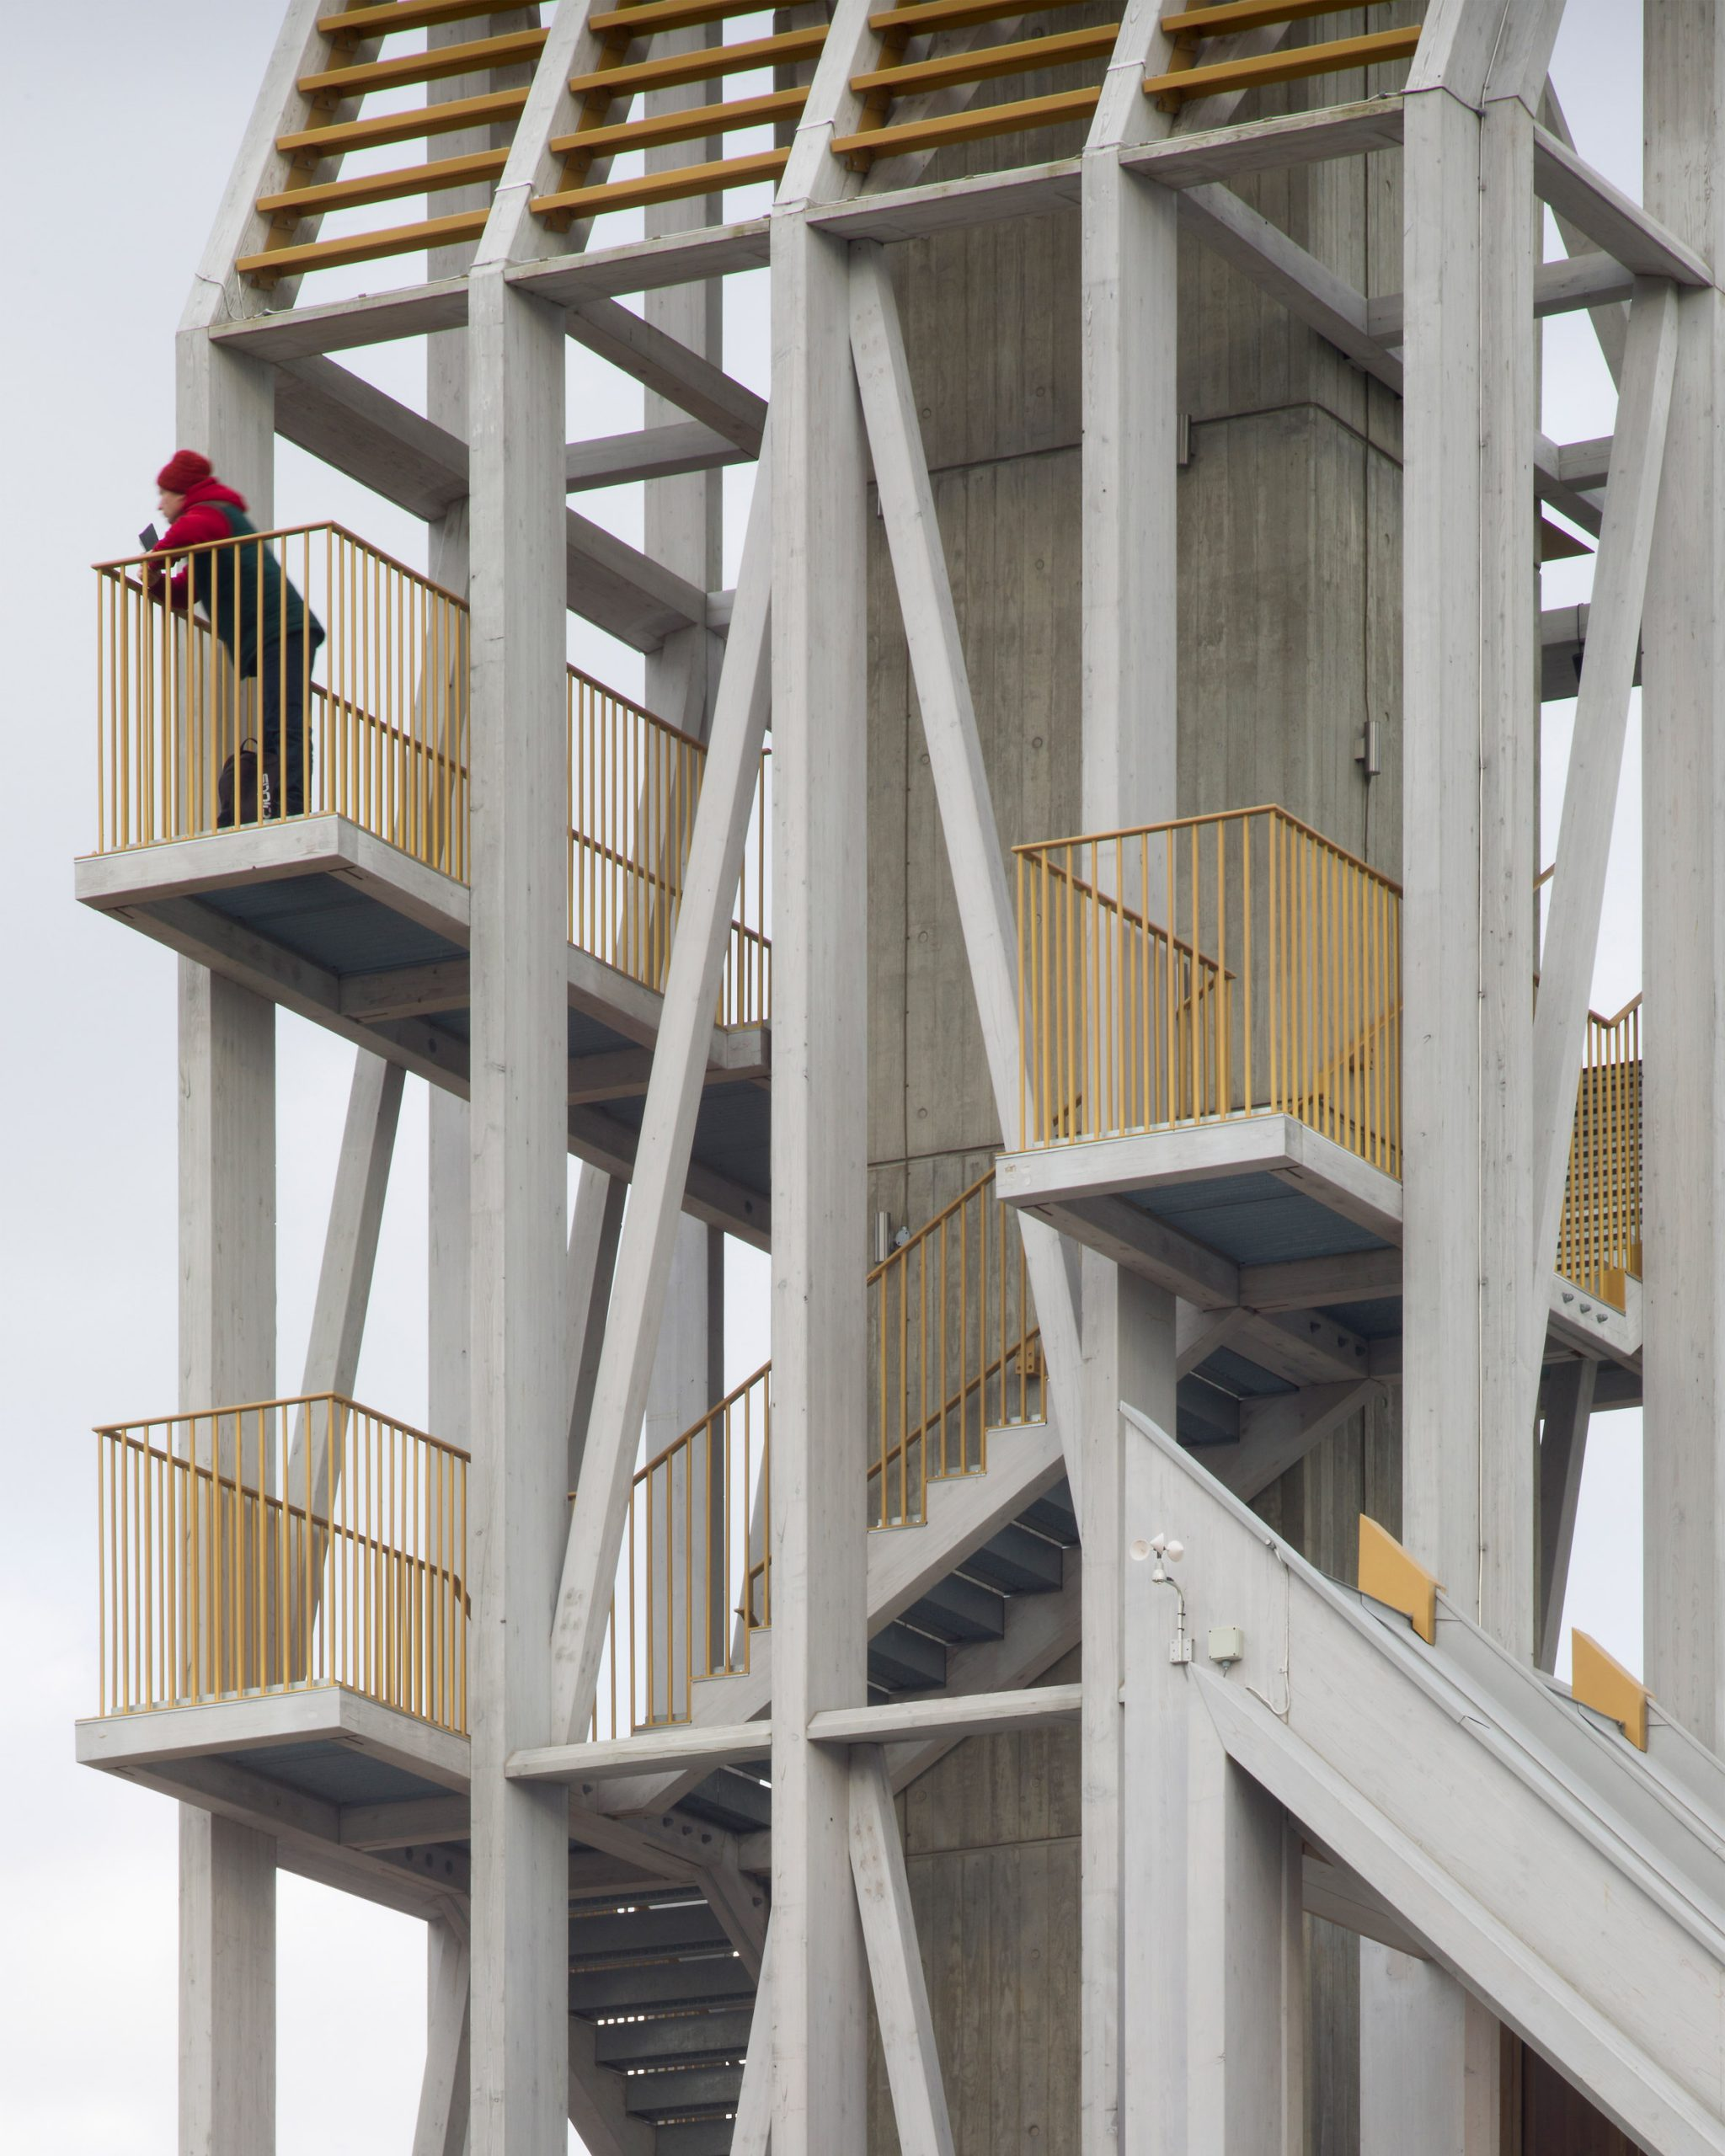 A larch lookout tower with gold balconies